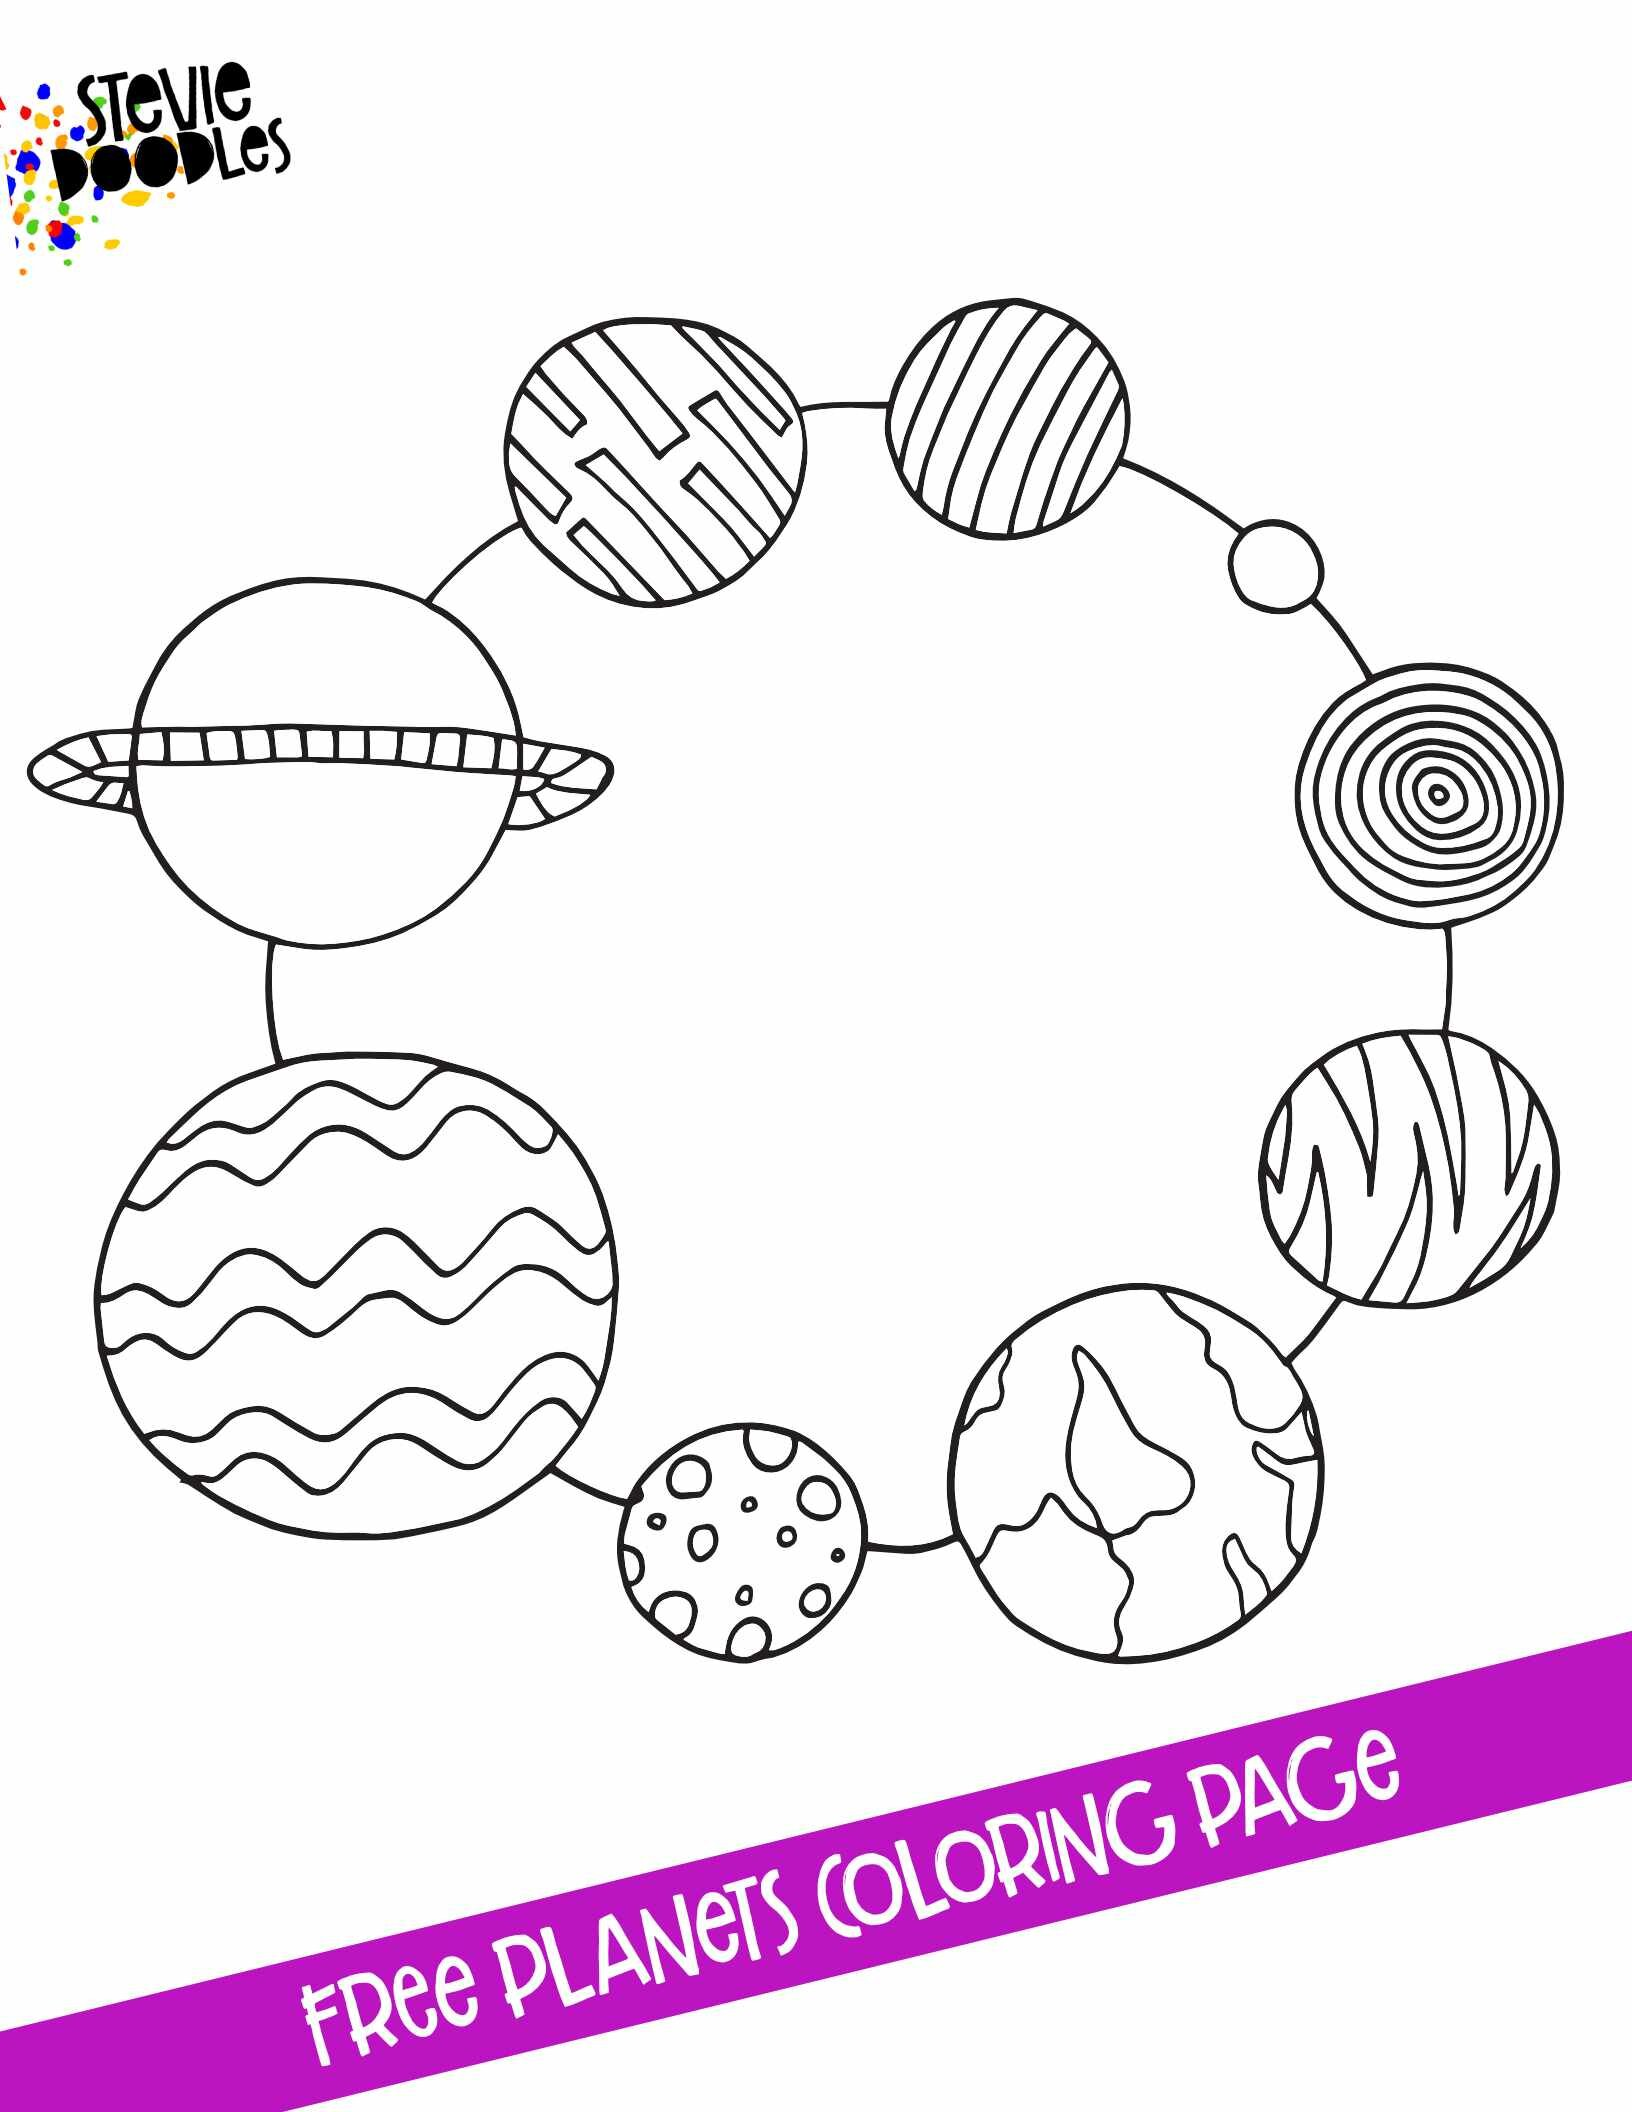 Ring Of Planets Free Printable Coloring Page Stevie Doodles Free Printable Coloring Pages